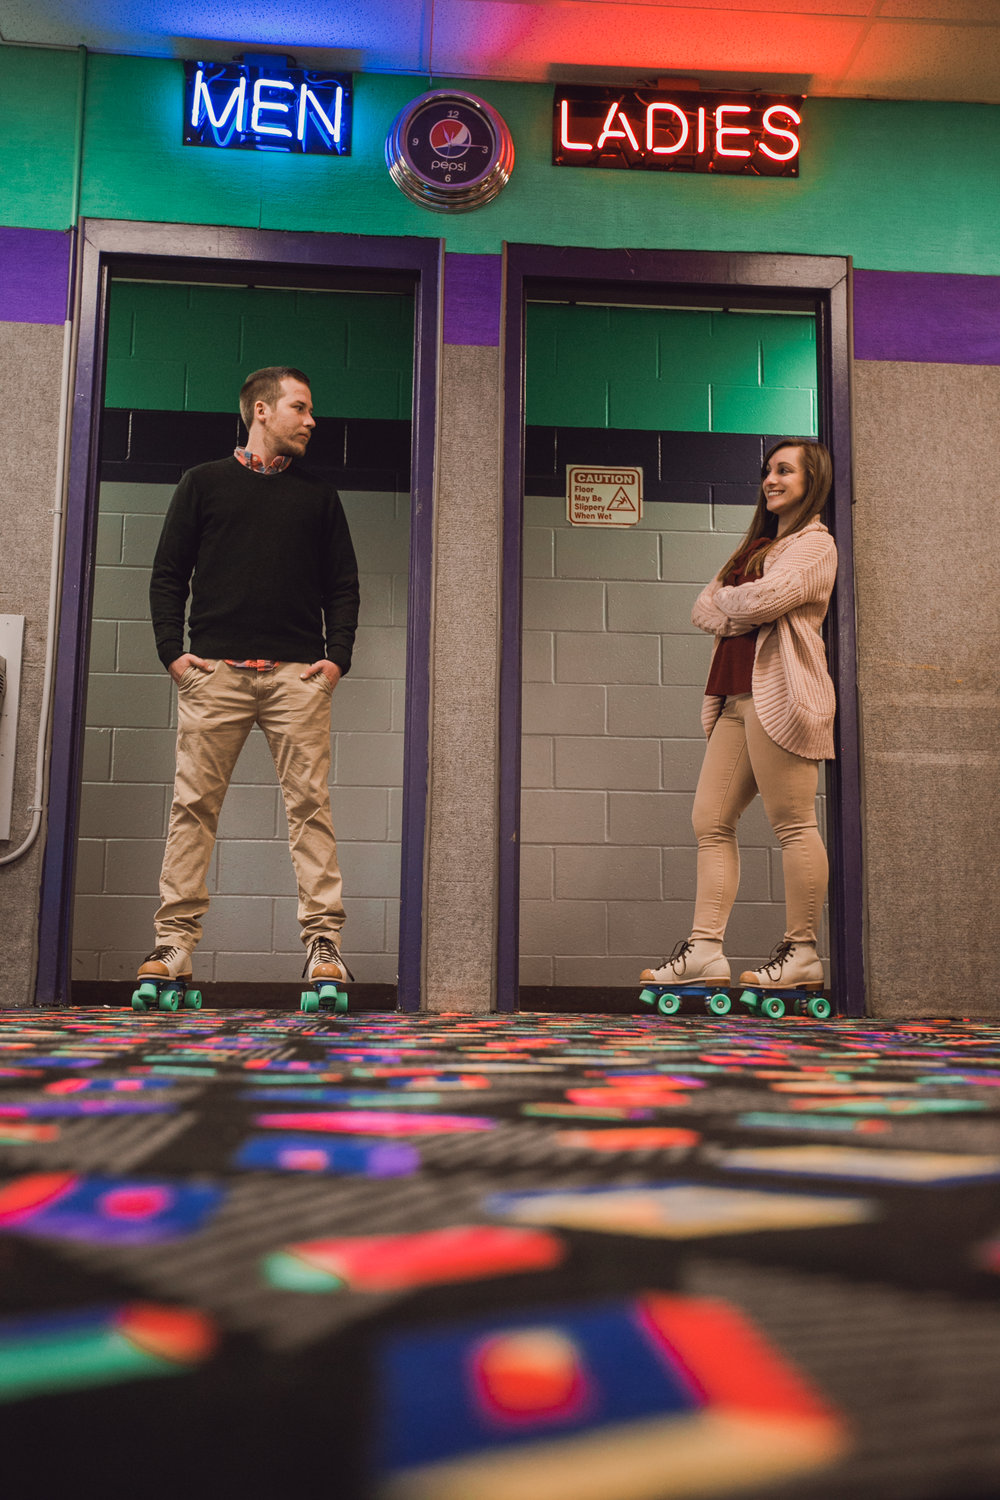 roller rink engagement session, wooddale fun zone engagement session, roller skate engagement session, minneapolis cafe lucrat engagment session, cafe lucrat engagement session, minneapolis minnesota engagement session-www.rachelsmak.com20.jpg